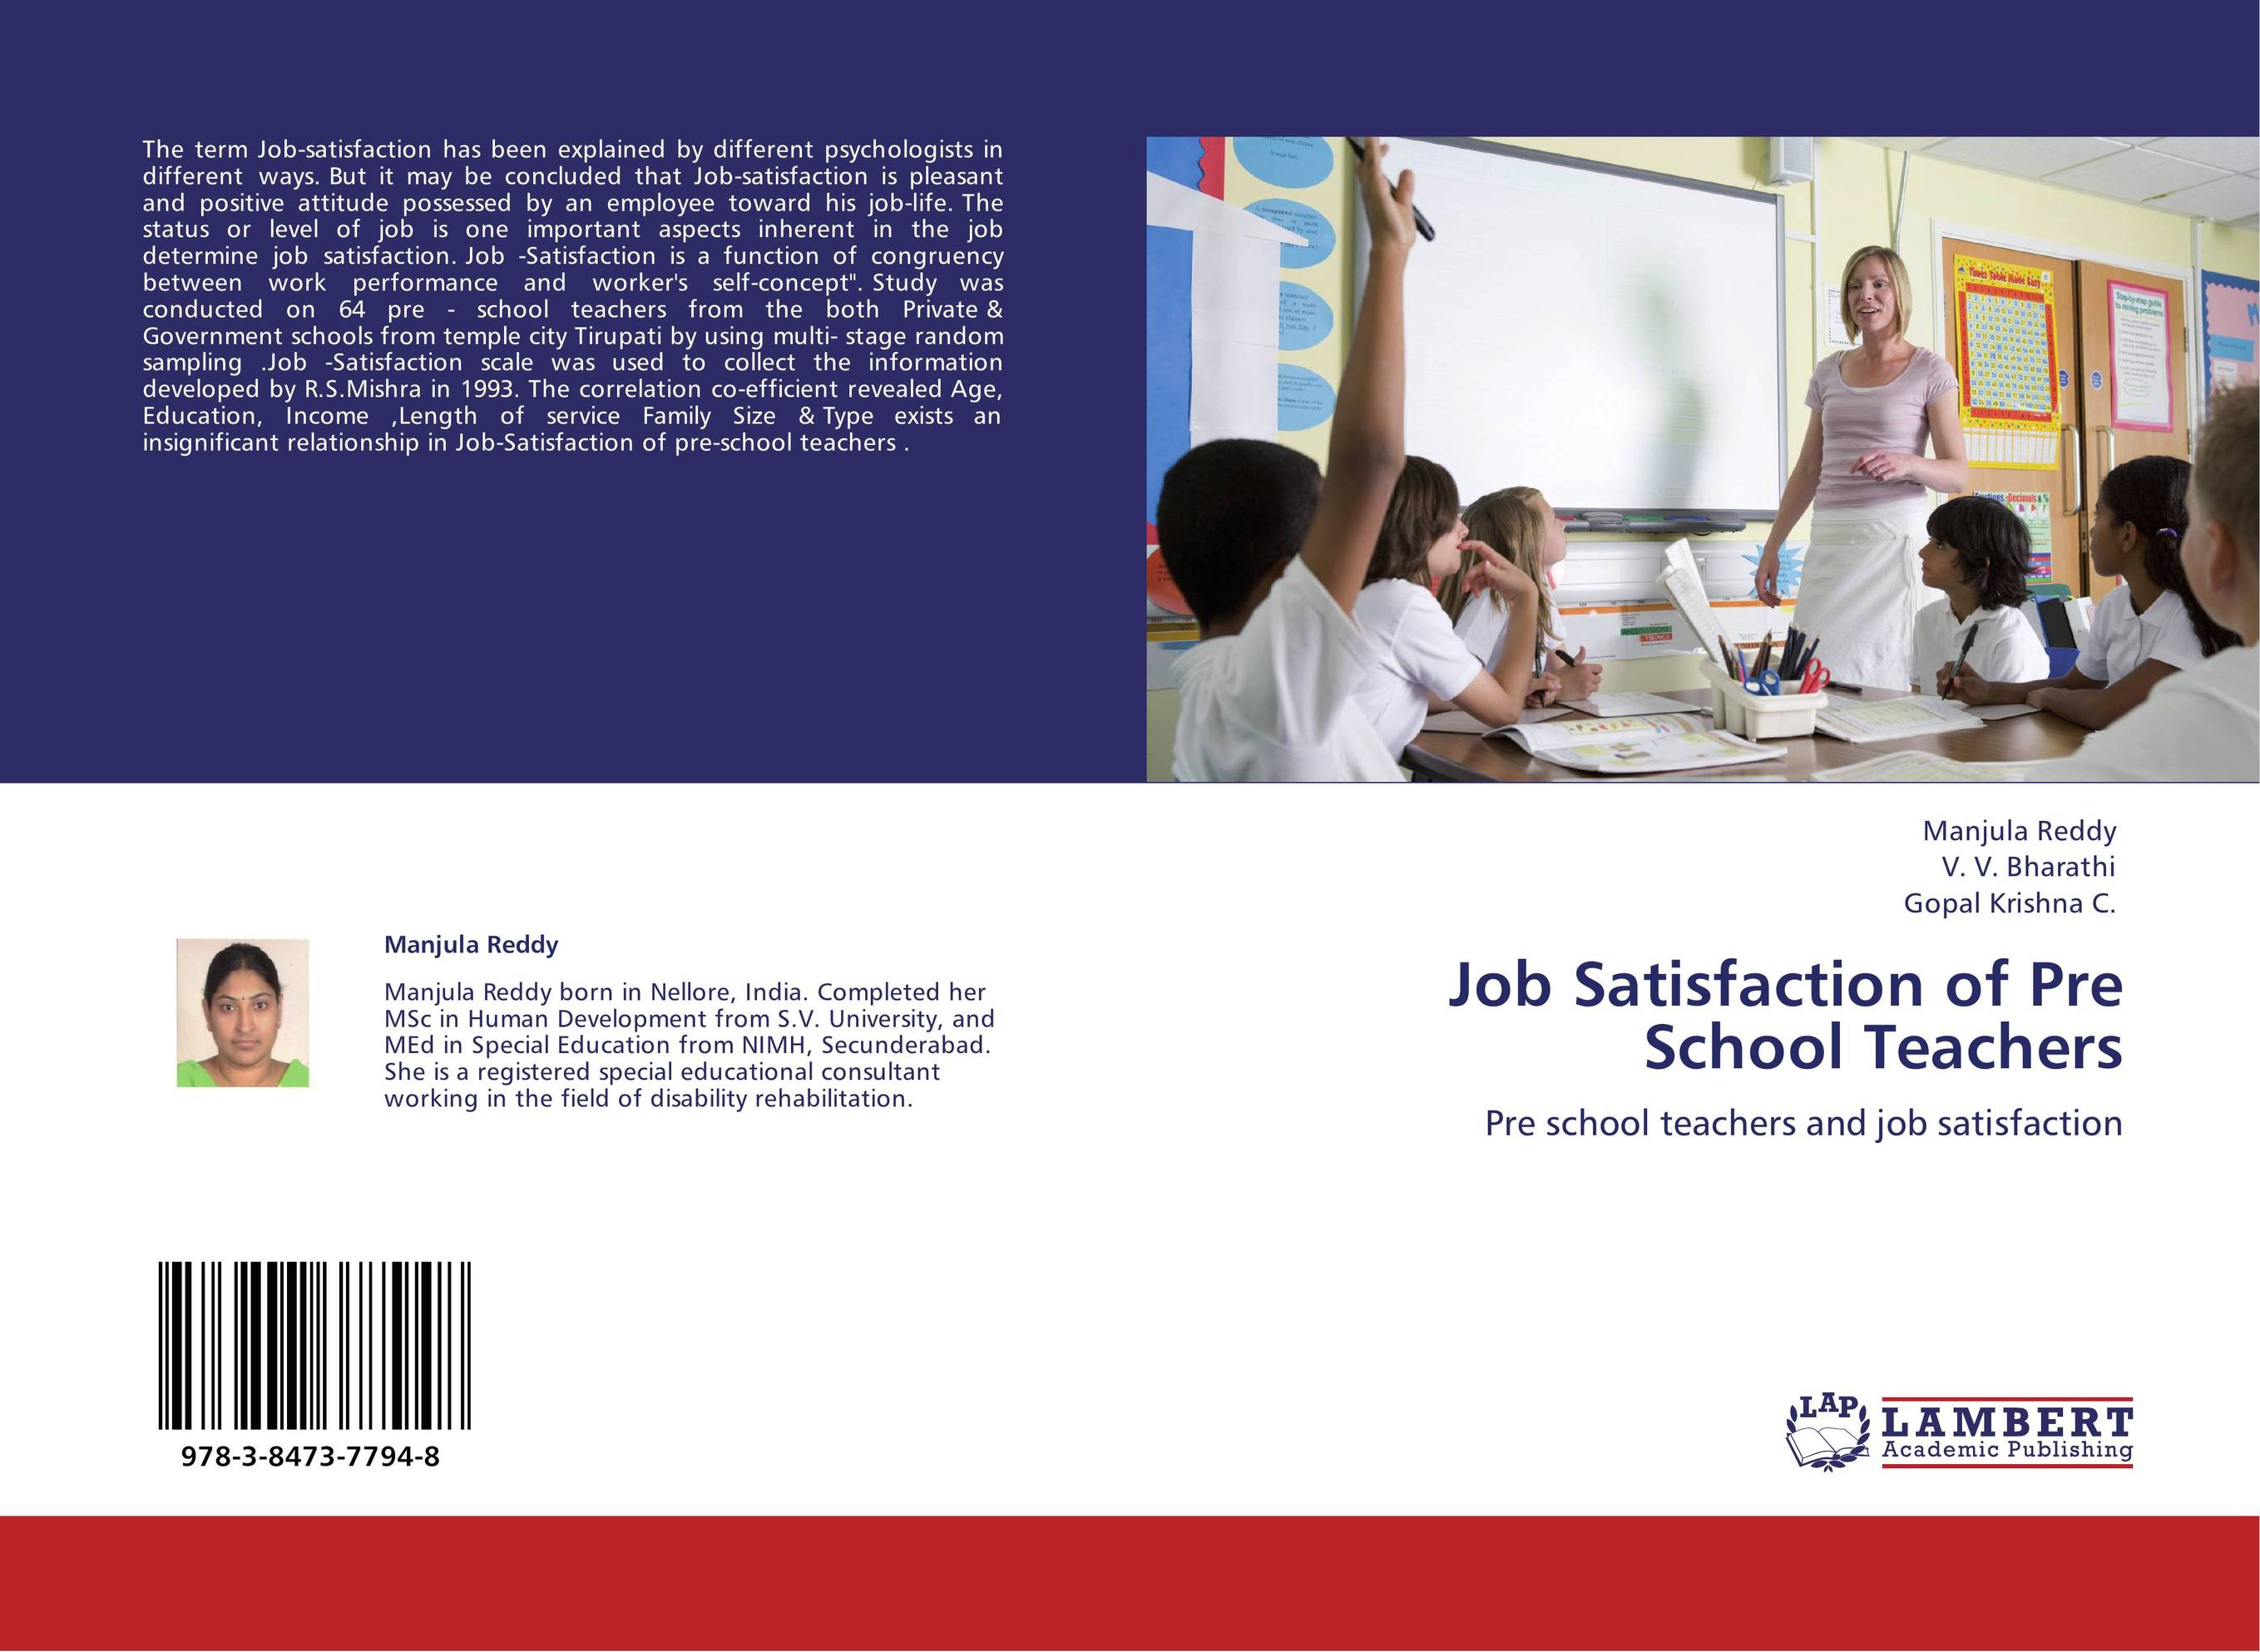 thesis on job satisfaction of school teachers Of school principal communication on teacher job satisfaction, hereby, solemnly declare that this thesis is my own original research work that has been done and prepared by me under the supervision of dr mohamed alhosani, in the college of.